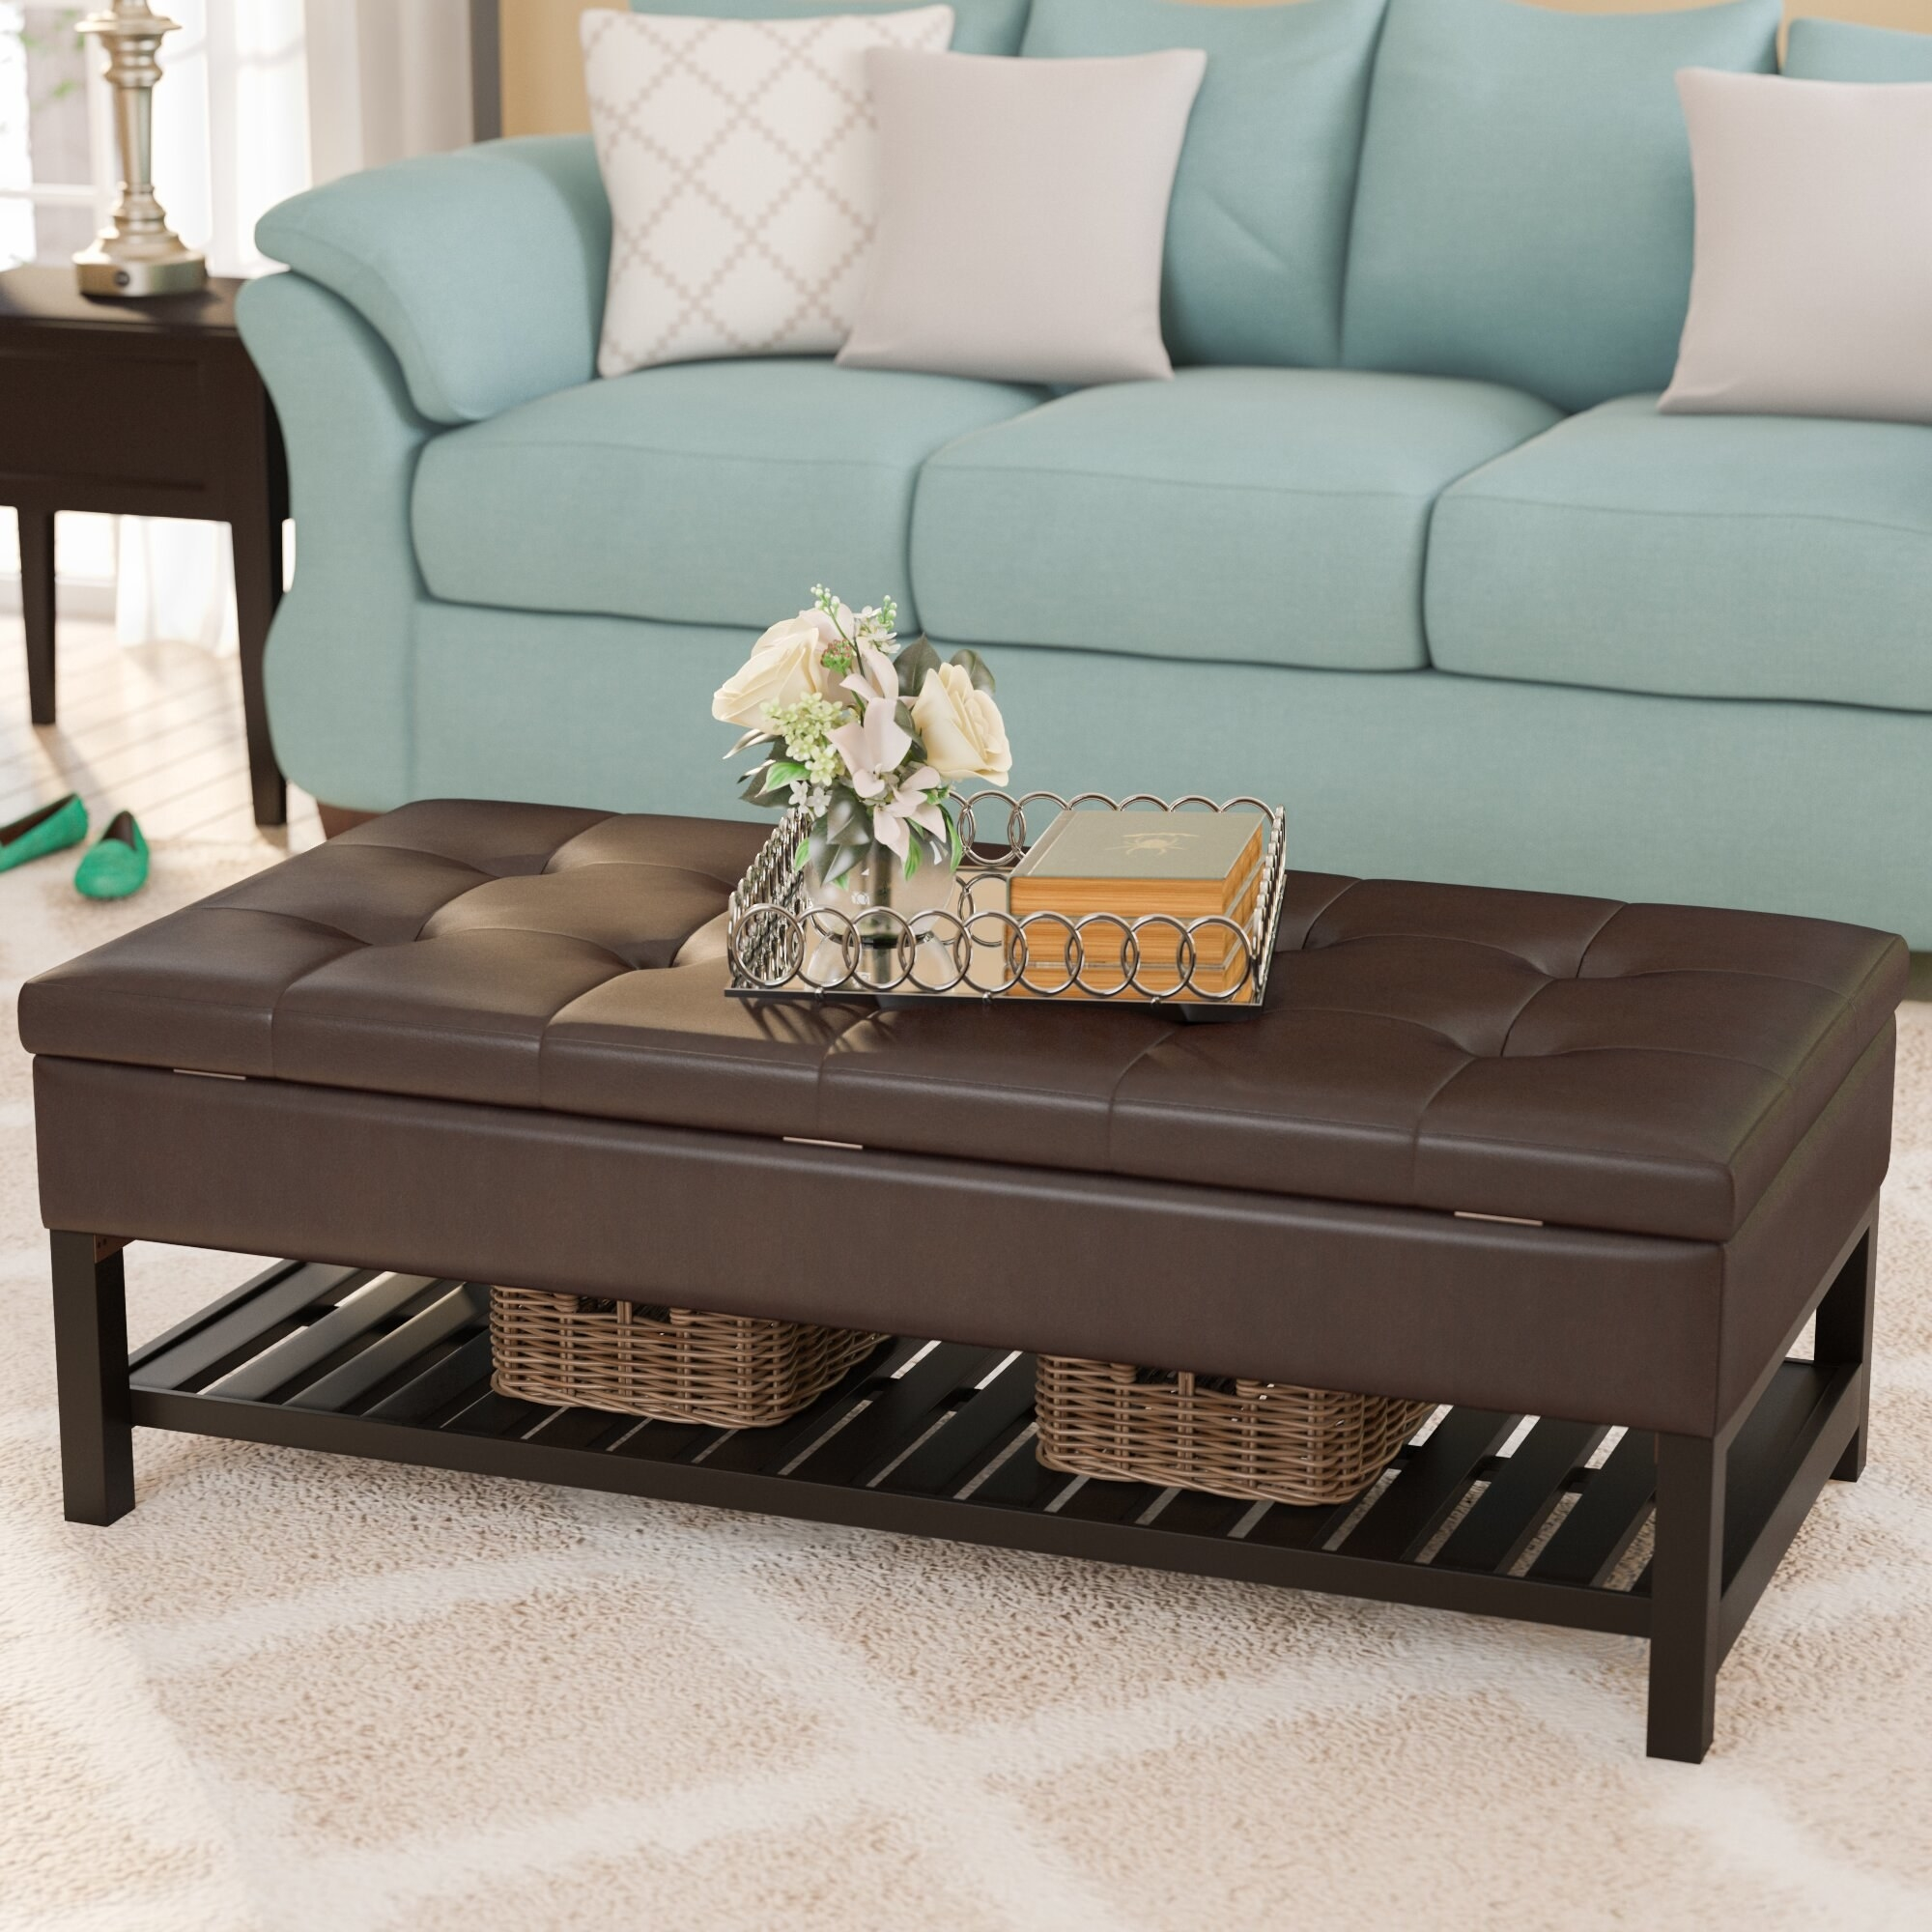 The storage bench being used as a coffee table